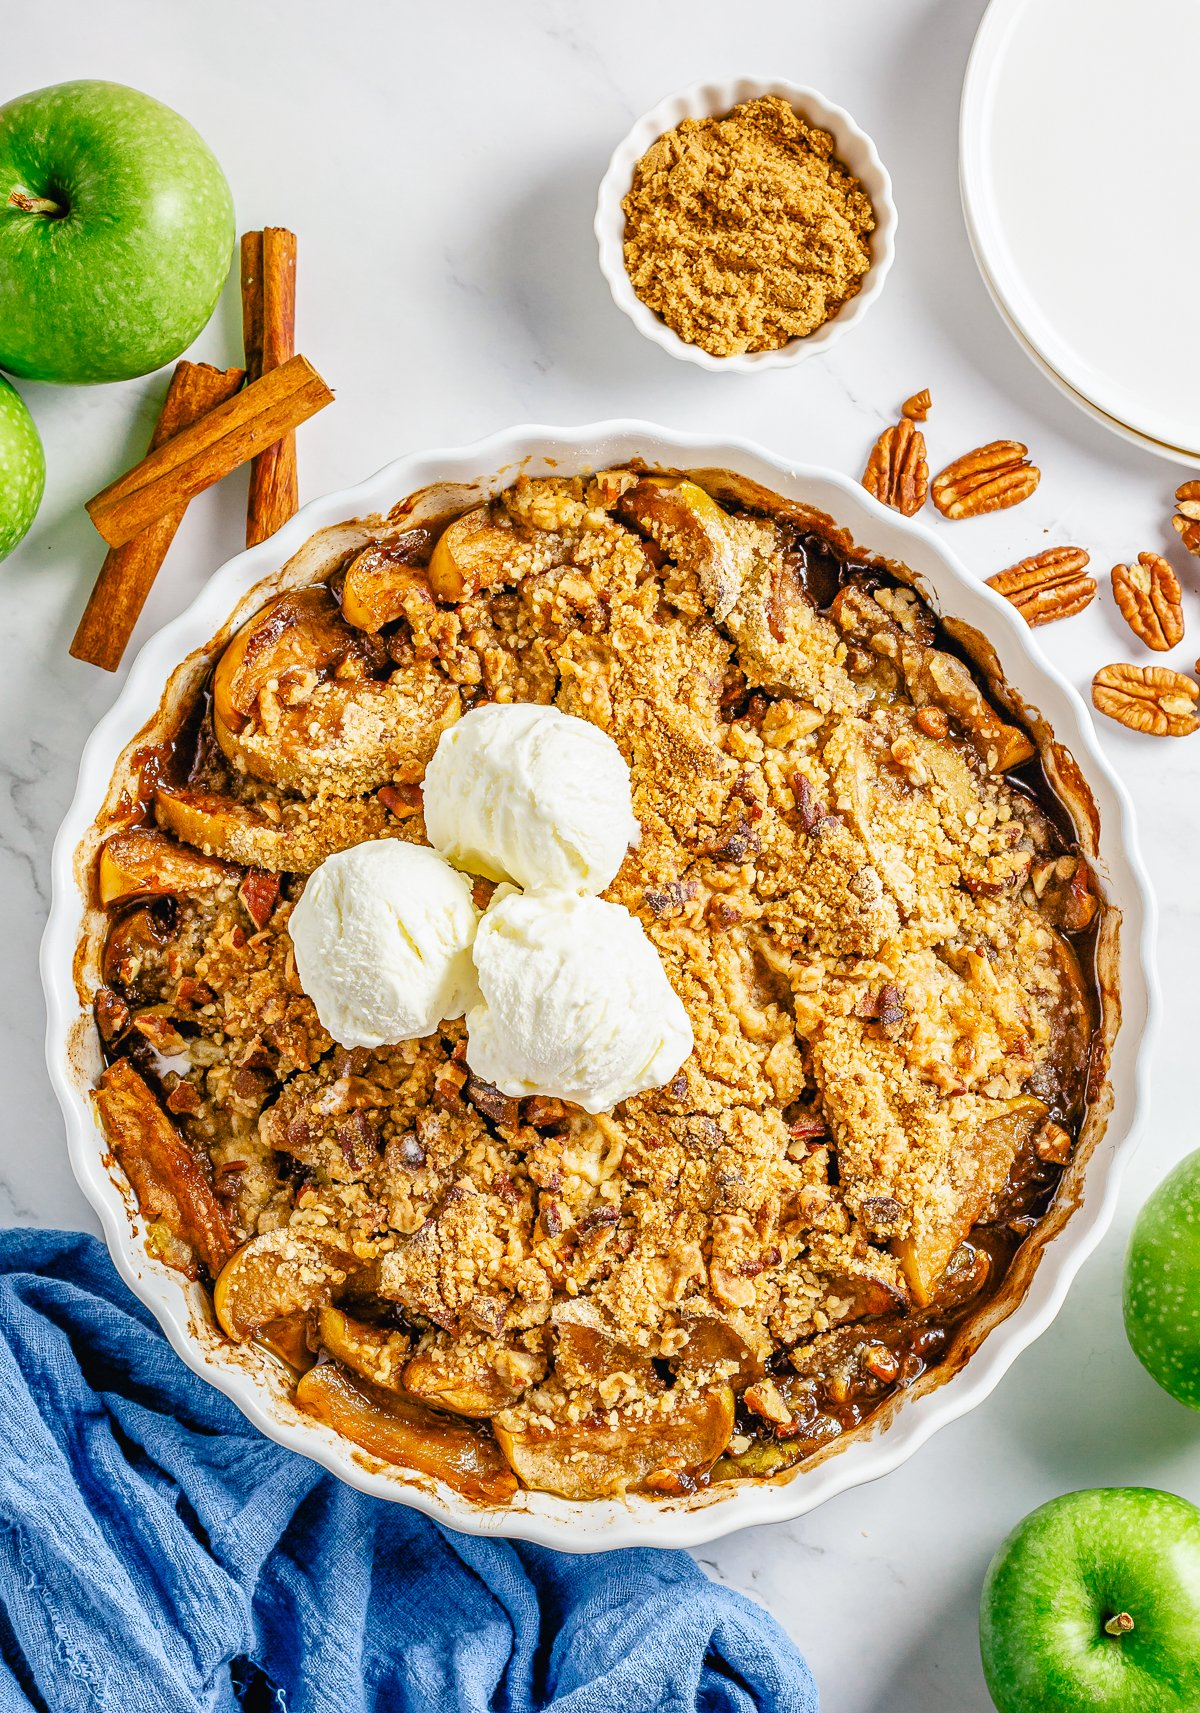 Easy Apple Crumble out of oven in baking dish topped with ice cream.